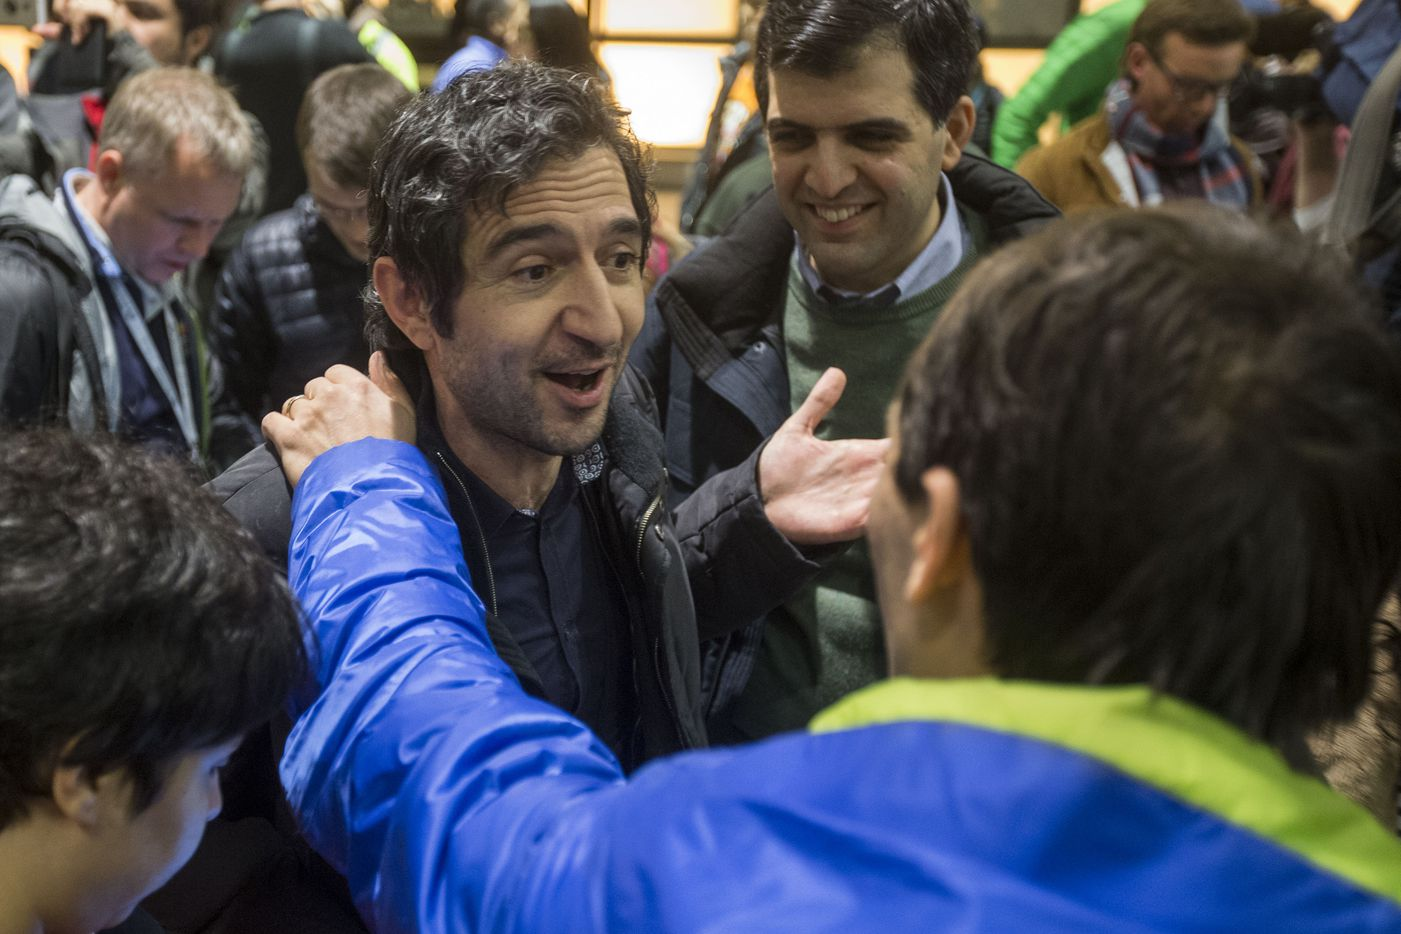 Mazdak Tootkaboni is welcomed during a demonstration against the new ban on immigration issued by President Donald Trump at Logan International Airport on January 28, 2017 in Boston, Massachusetts. Tootkaboni is a U.S. green card holder from Iran and a professor at the University of Massachusetts at Dartmouth, who was separated from other passengers and questioned as a result of the new immigration ban issued by President Donald Trump.